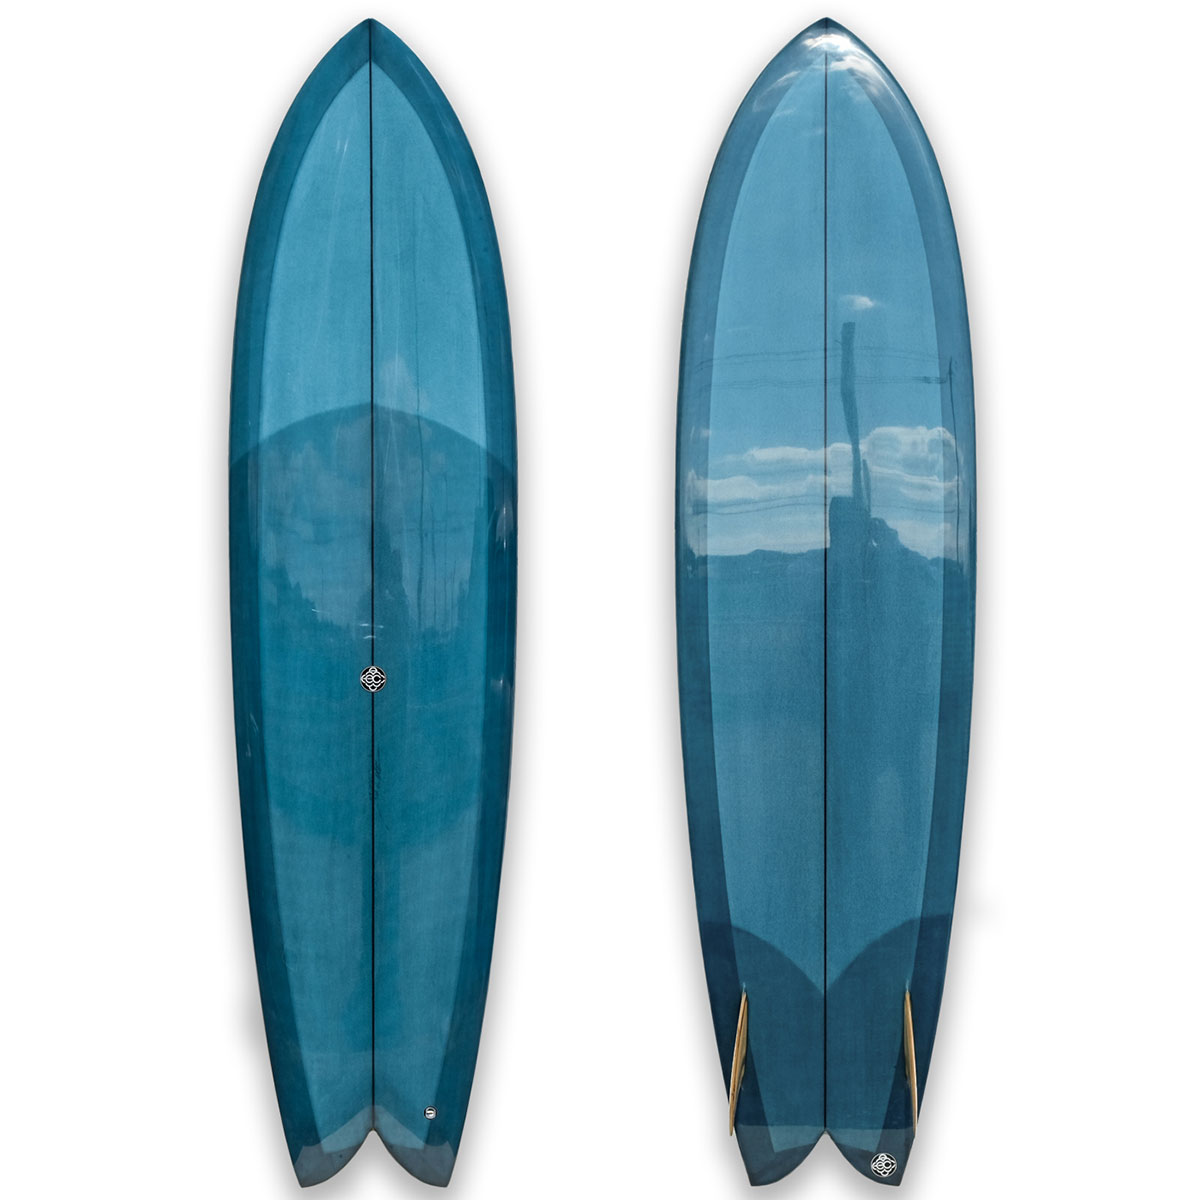 "【新品ストック】EC SURFBOARDS / Millennium Falcon 7'3"" x 22"" x 3"" No.20200322_2"